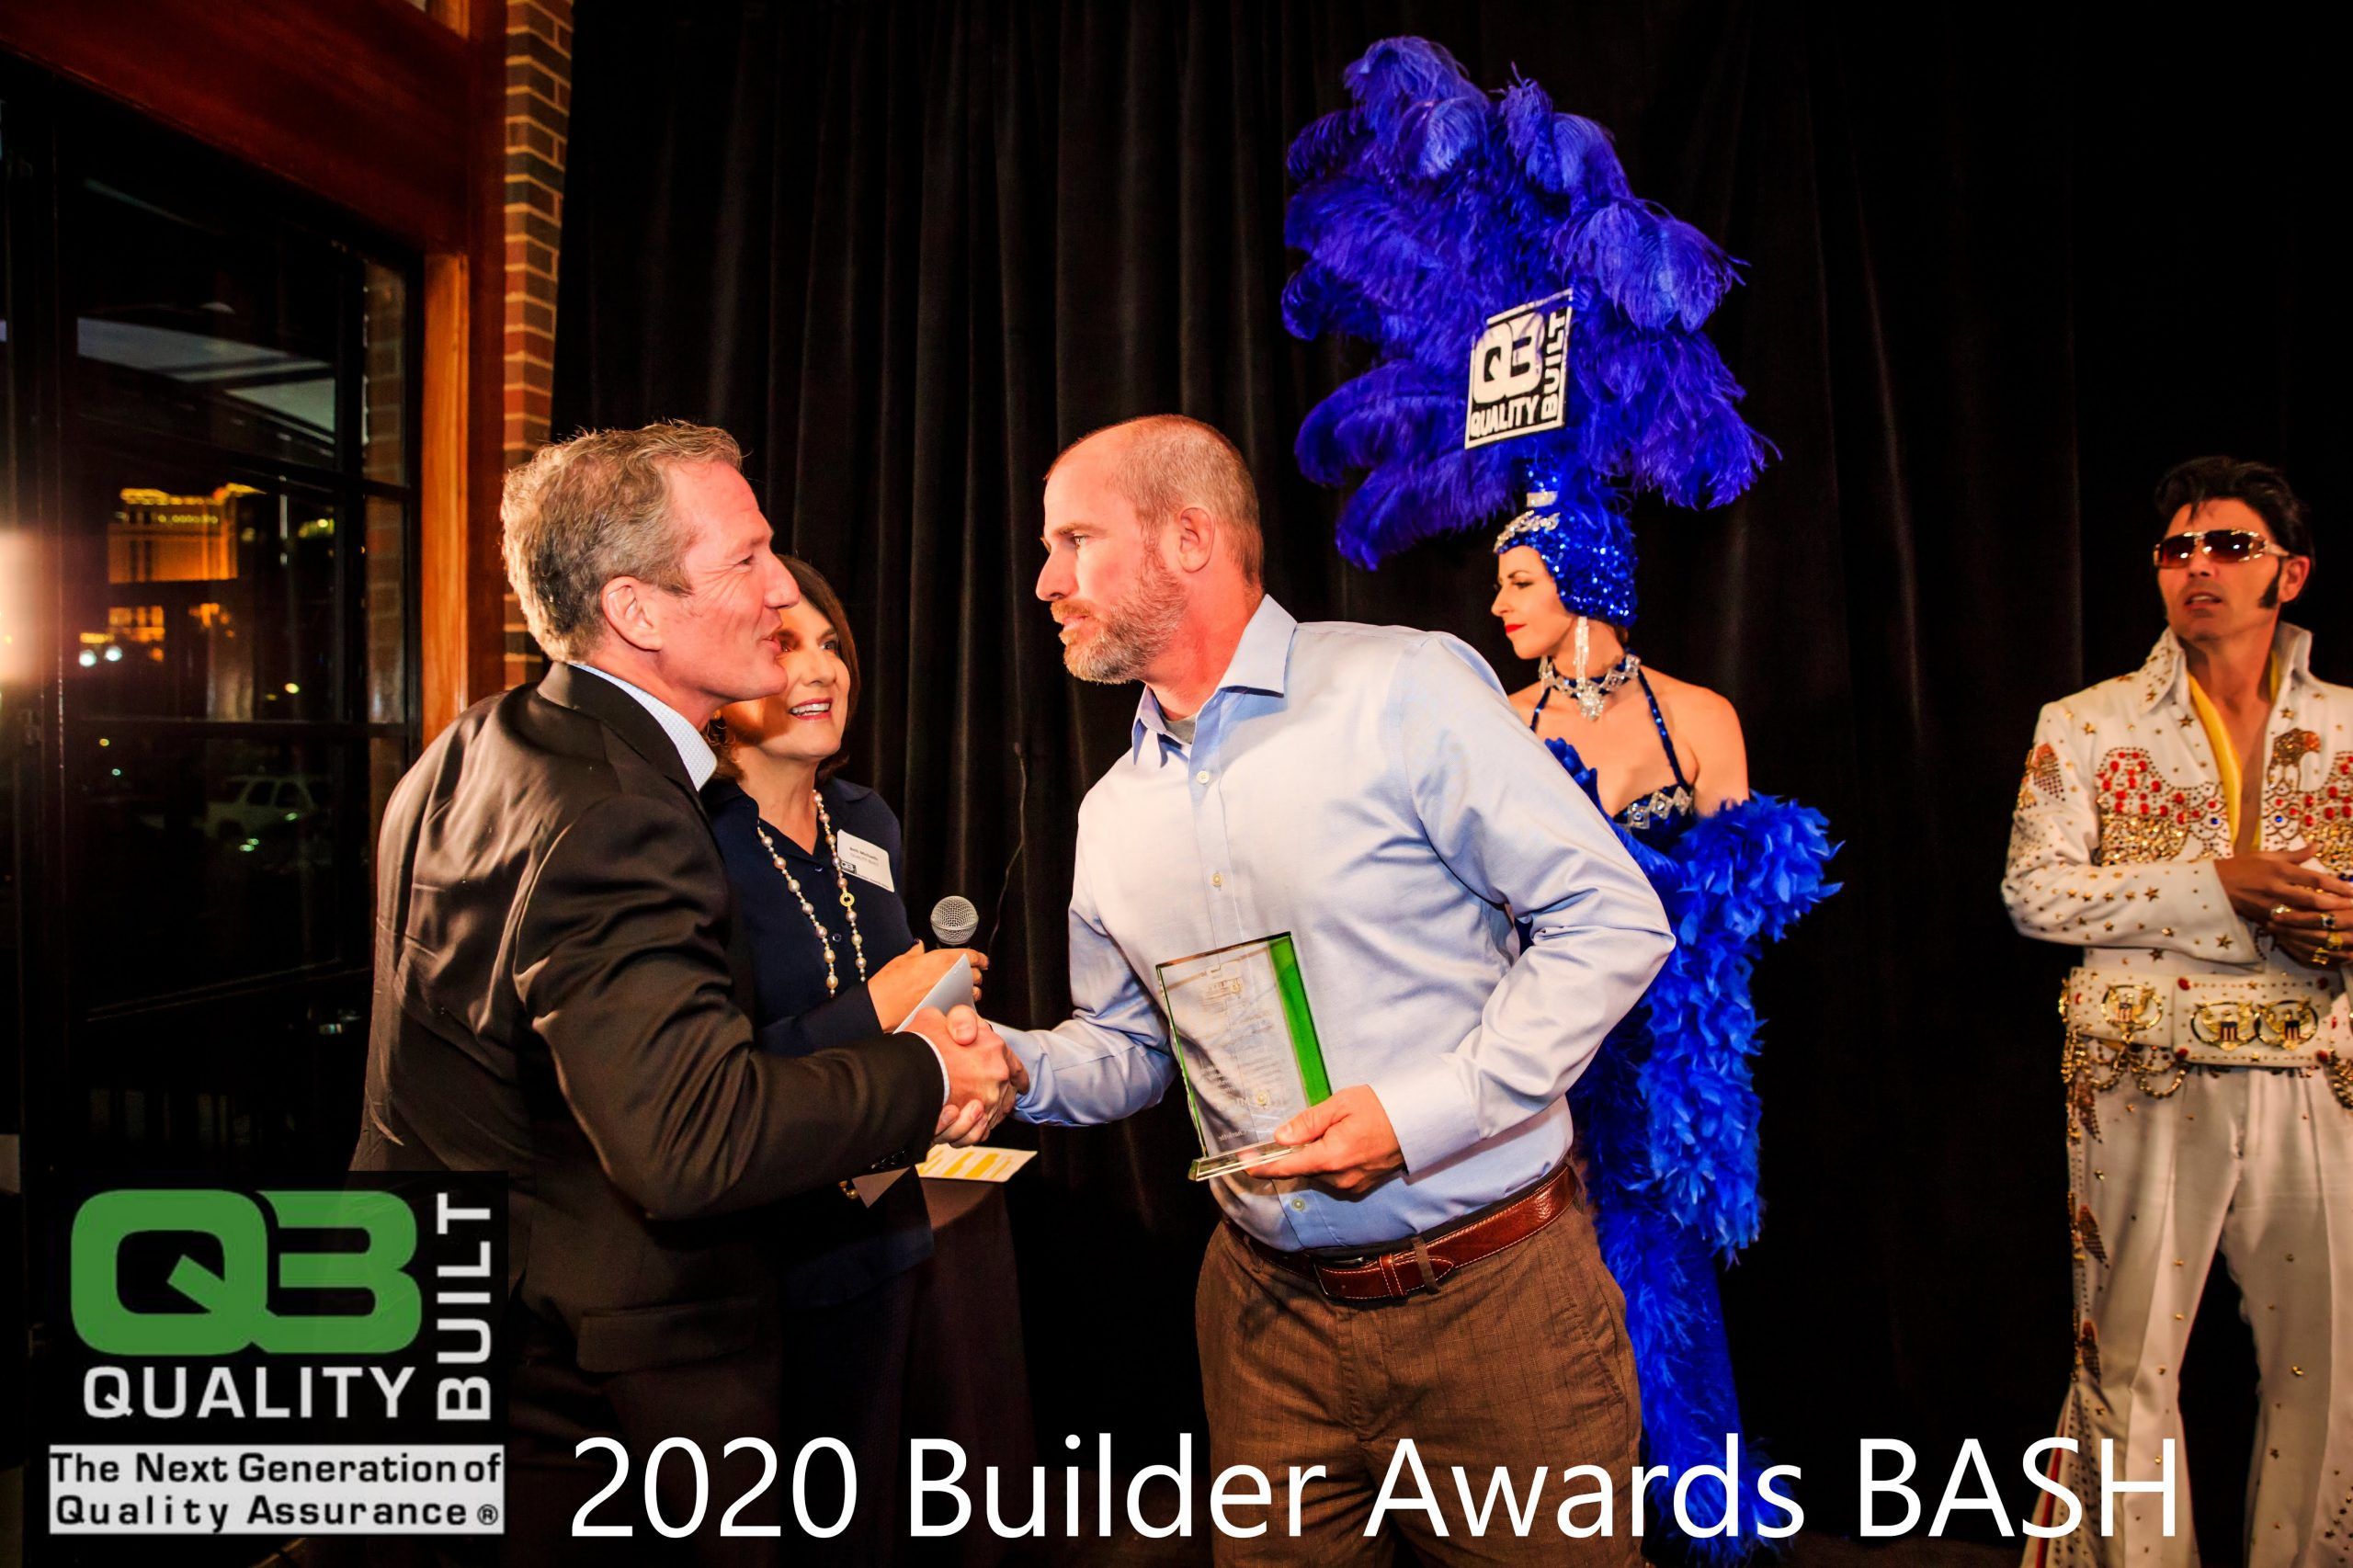 meritage-homes-at-qb-builder-awards